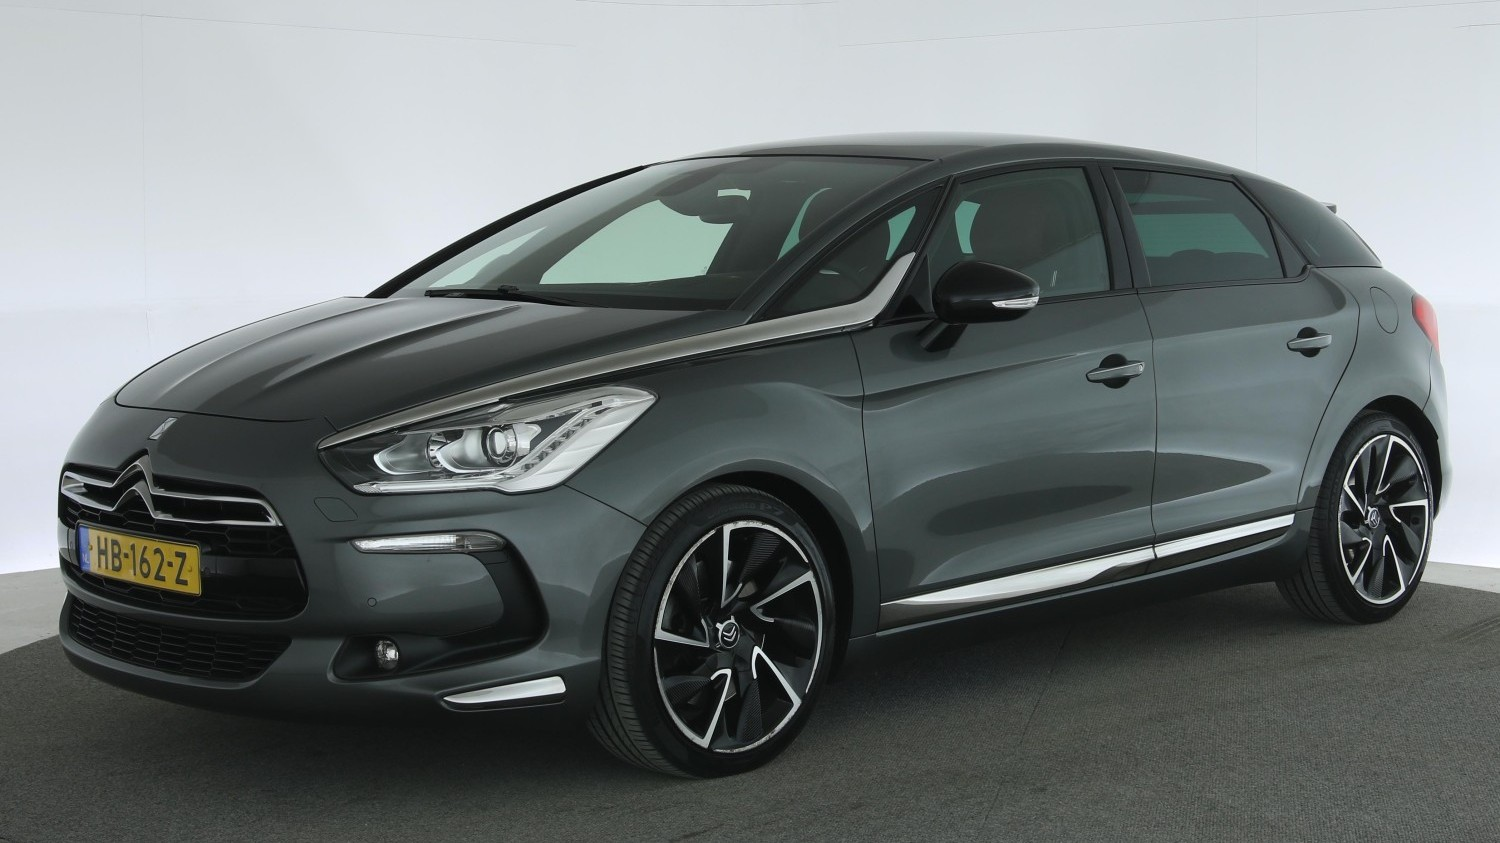 Citroen DS5 Hatchback 2013 HB-162-Z 1